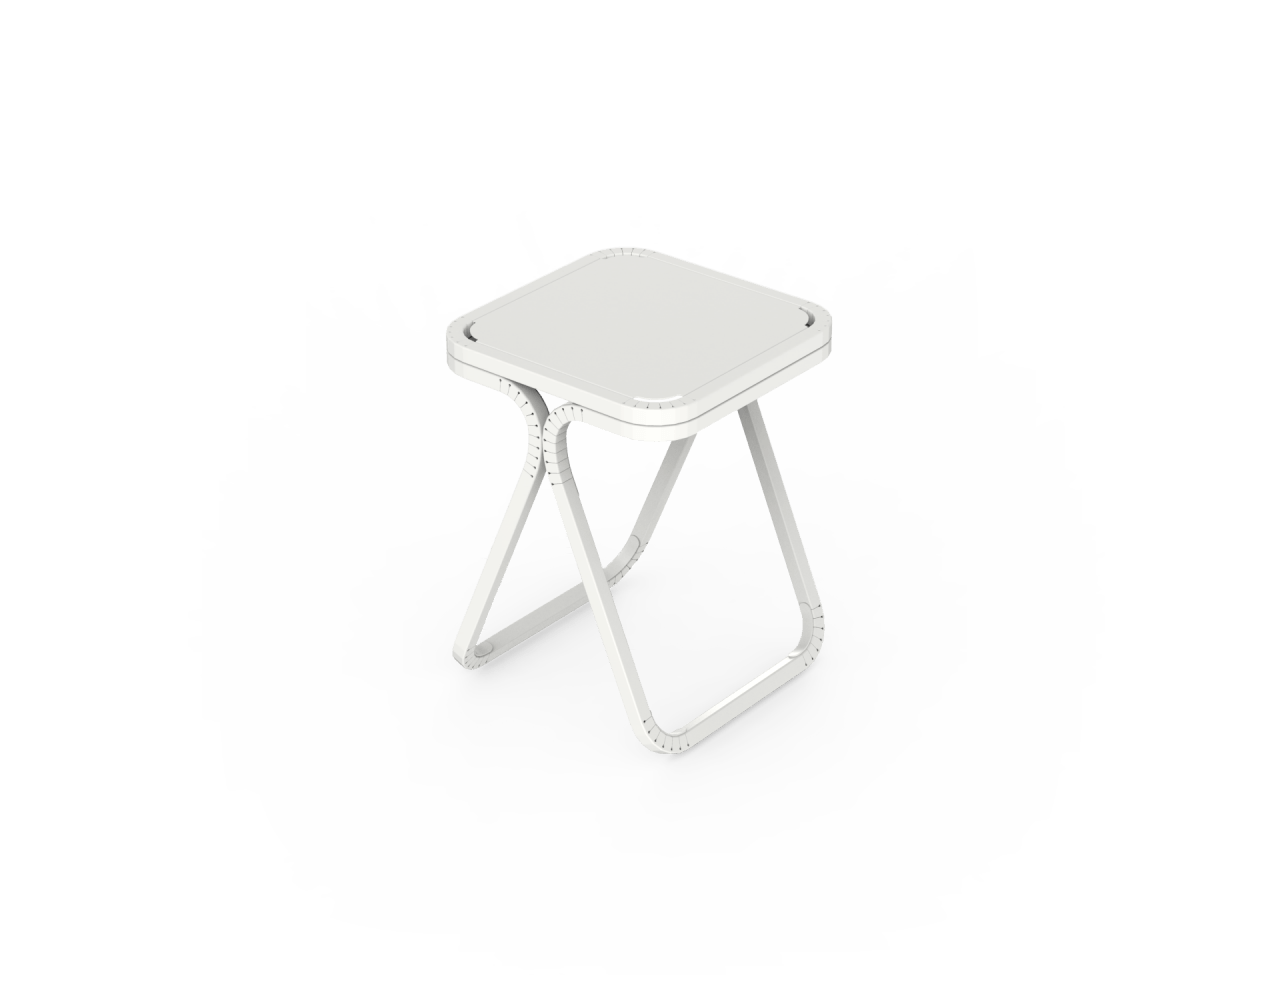 A render of a modern chair from CutWorks